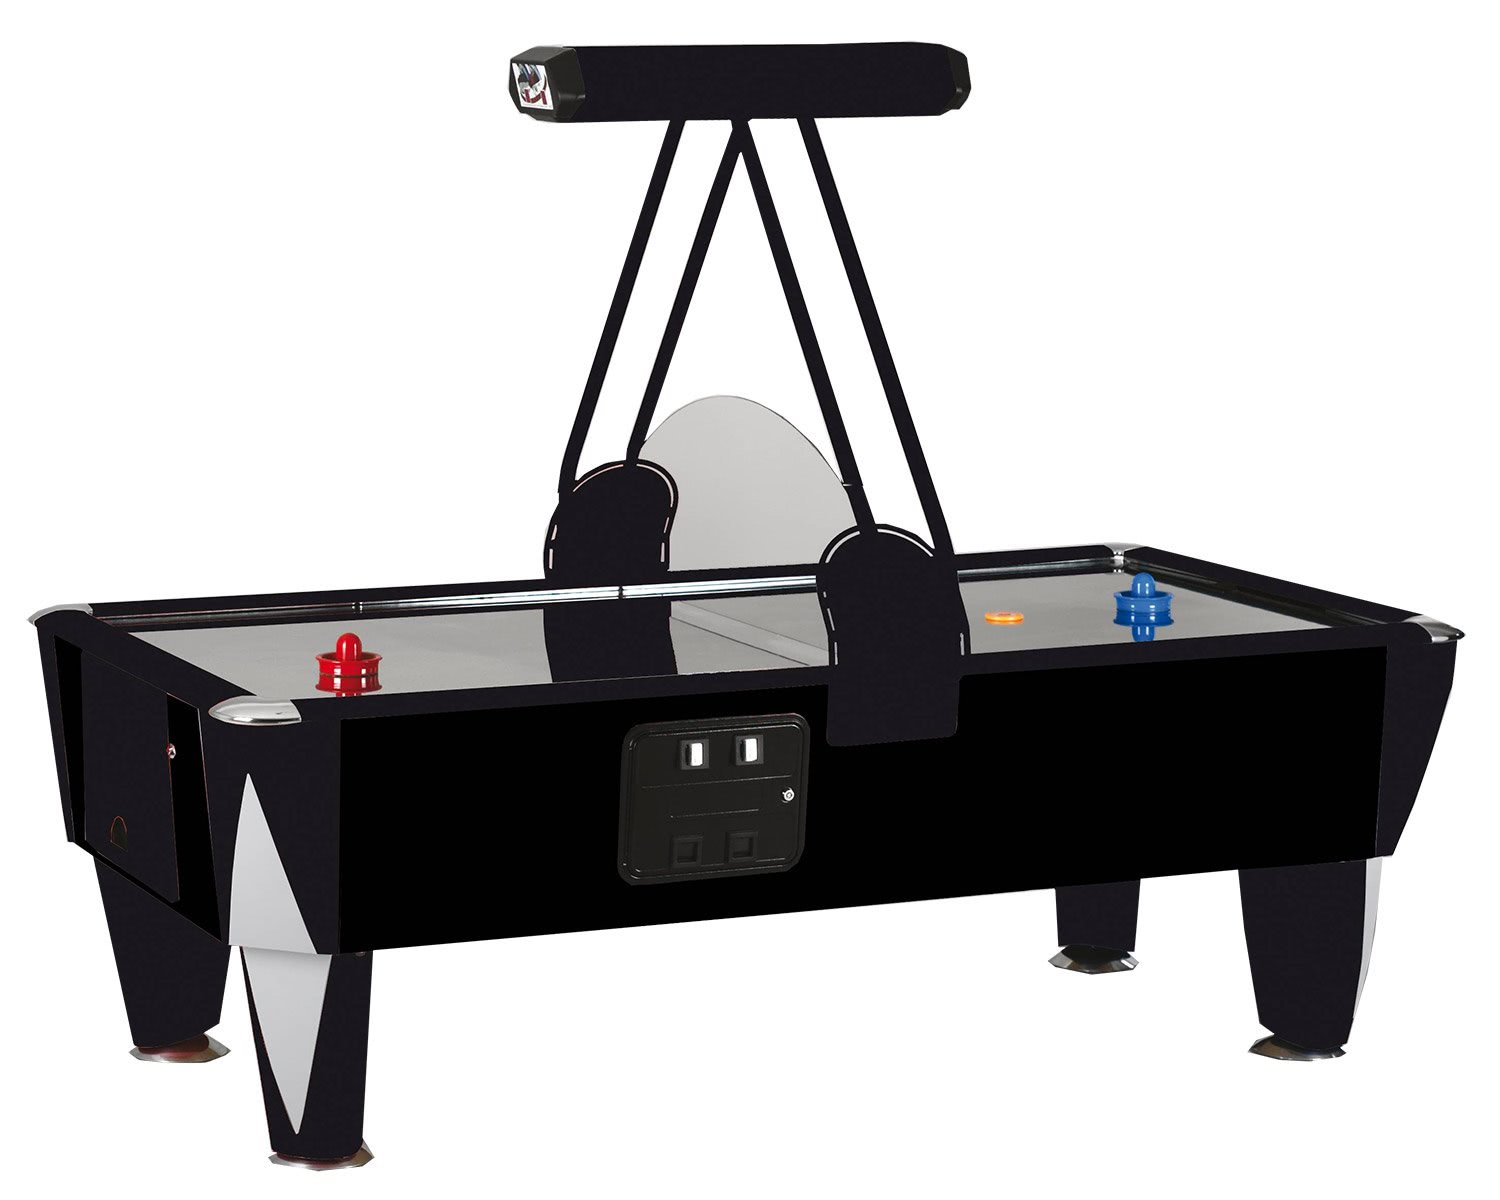 Sam Black Track 8 Foot Commercial Air Hockey Table